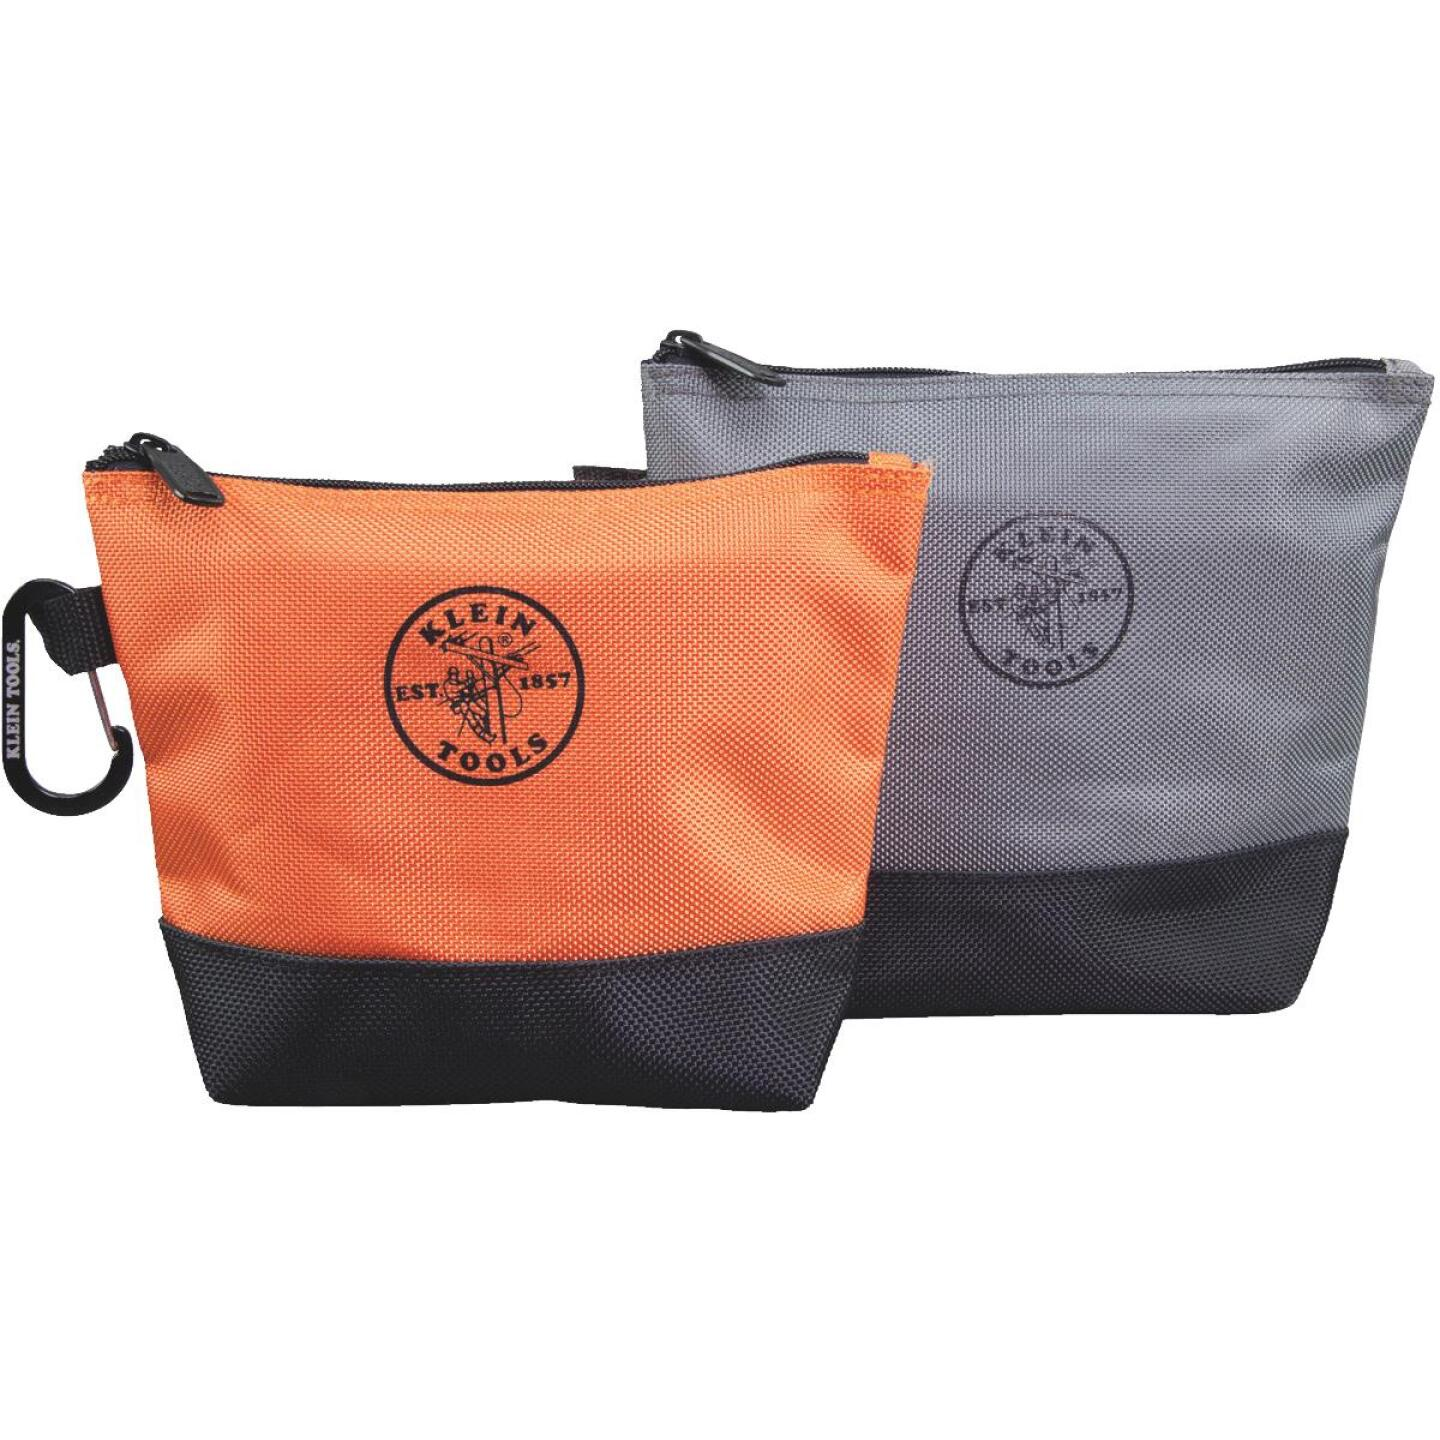 Klein 1-Pocket 8-1/2 In. & 9 In. Stand-Up Zipper Tool Bag (2-Pack) Image 1